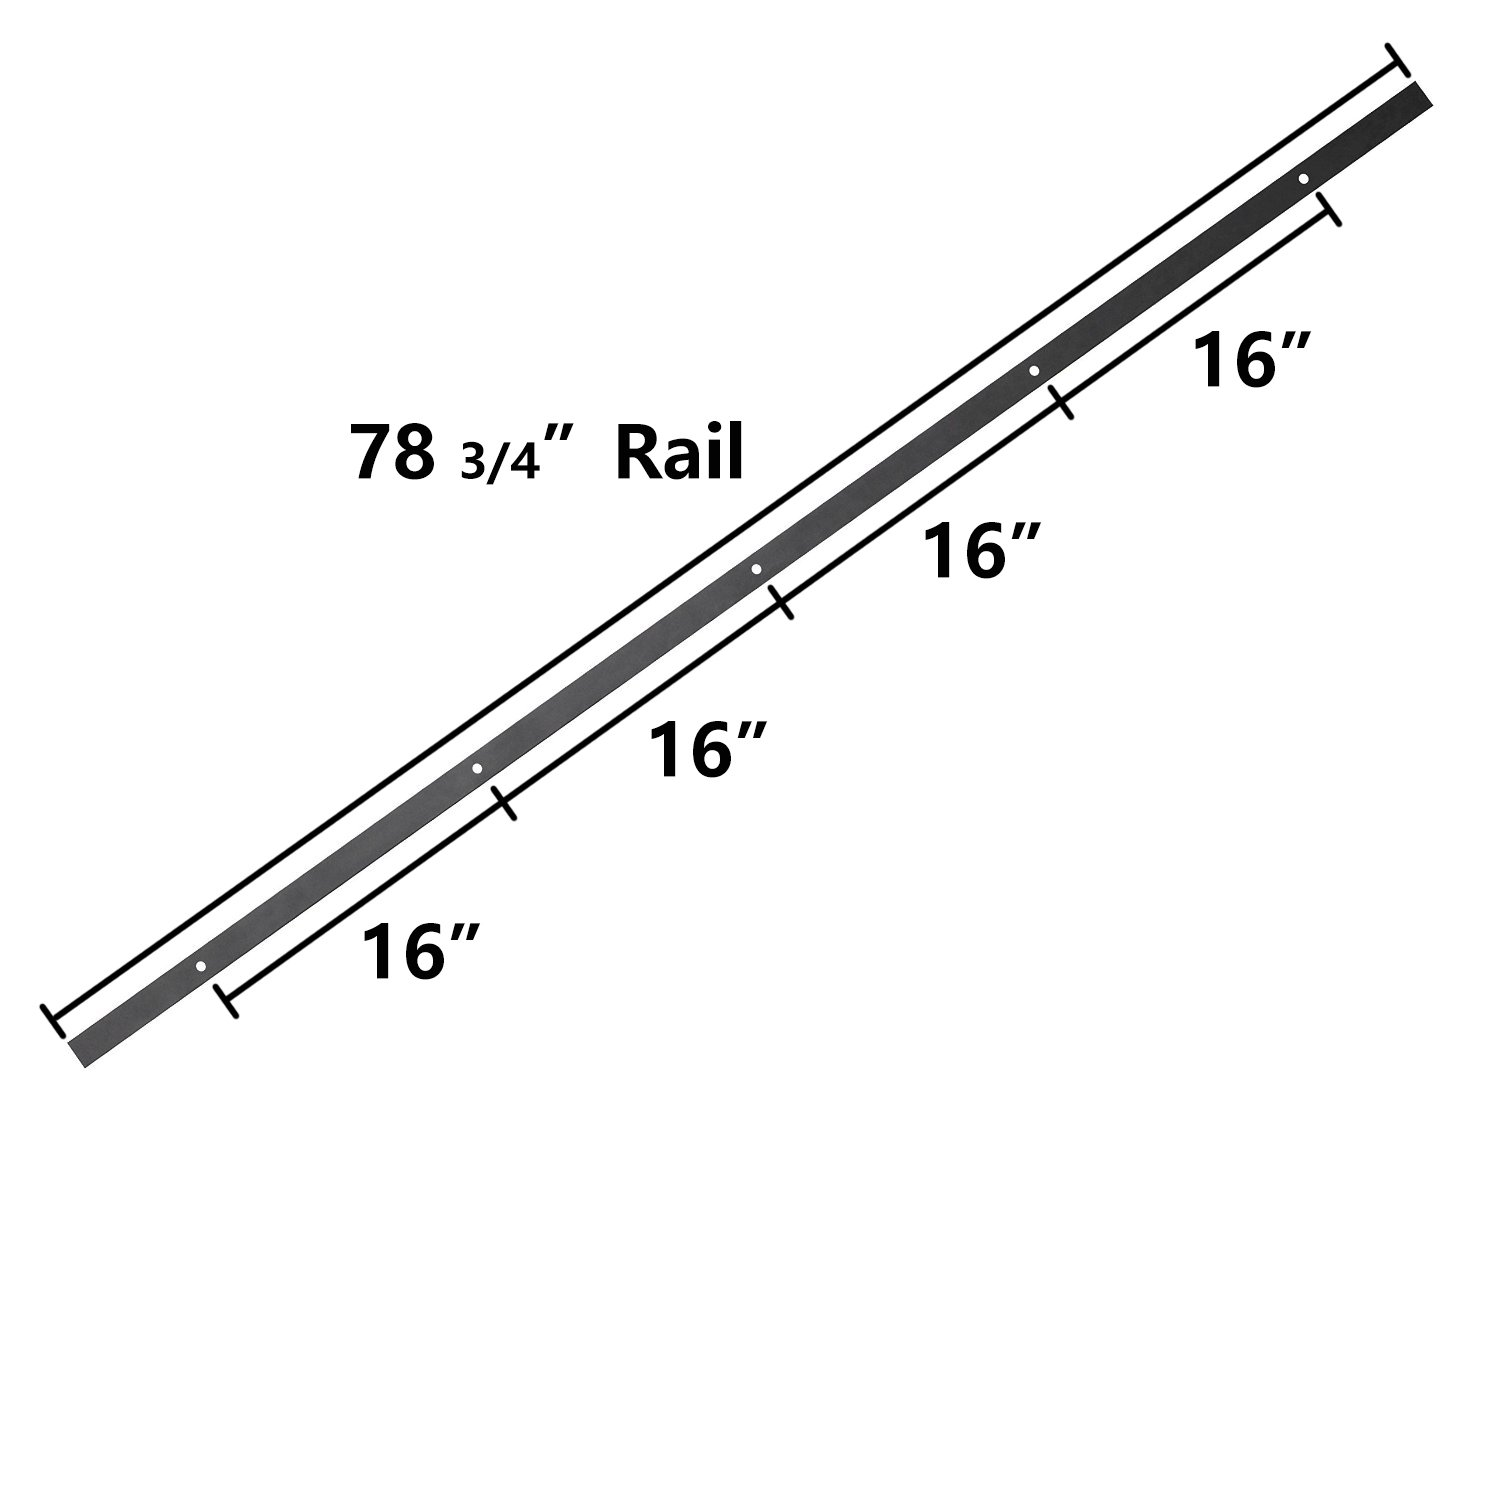 SMARTSTANDARD SDH0080STAINLESS03 Stainless Steel Sliding Barn Door Hardware Kit, 8ft Single Rail,Silver, Super Smoothly and Quietly, Simple and Easy to Install, Fit 48'' Wide DoorPanel by SMARTSTANDARD (Image #5)